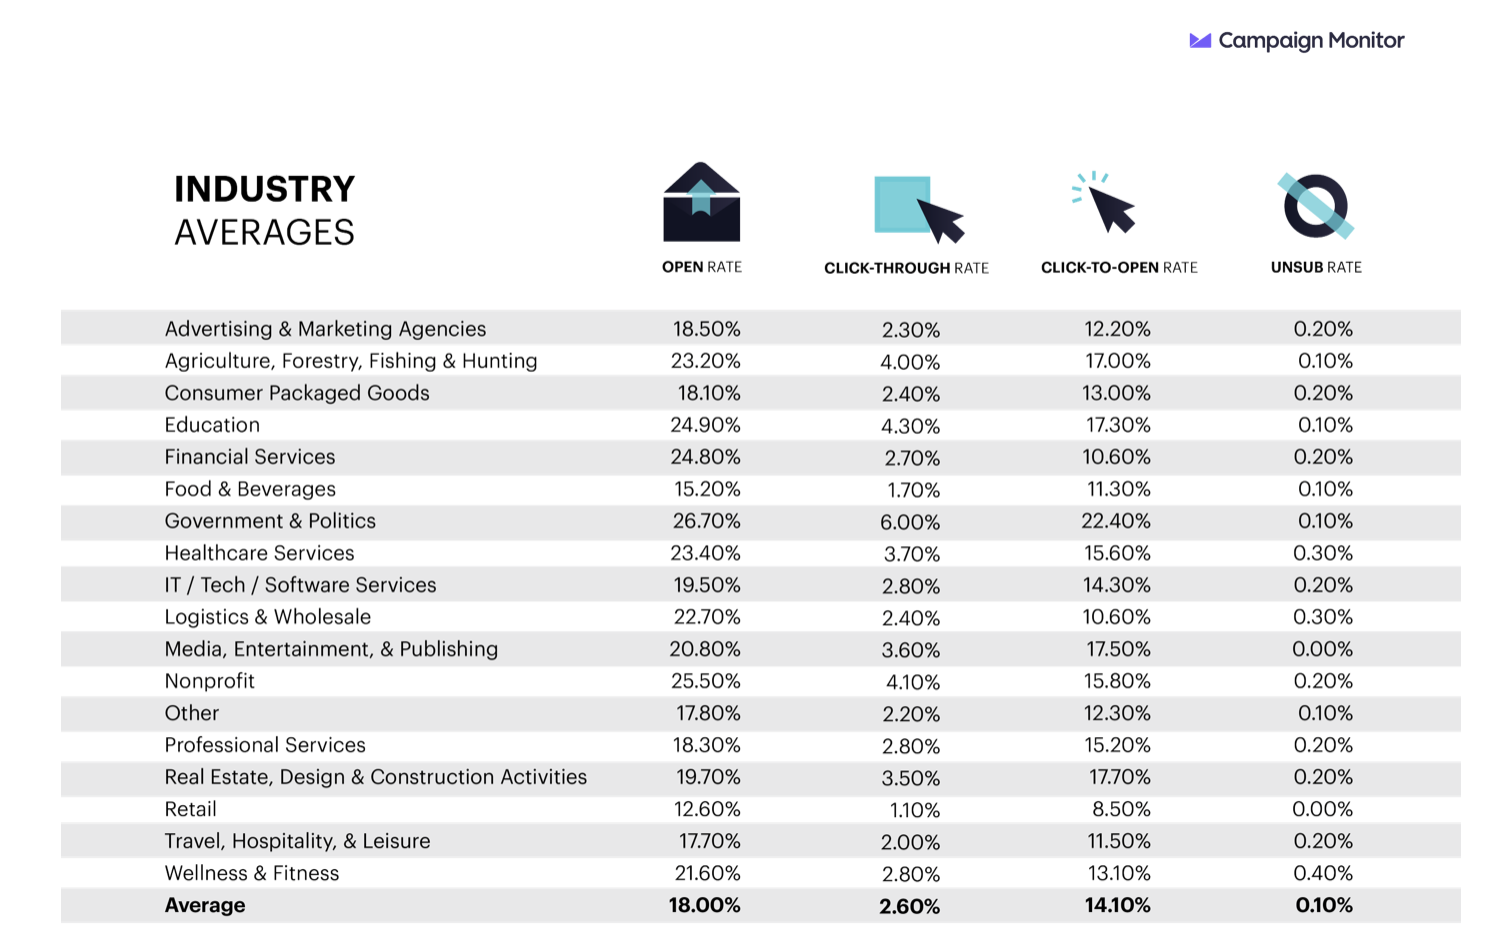 average email open rates of industries